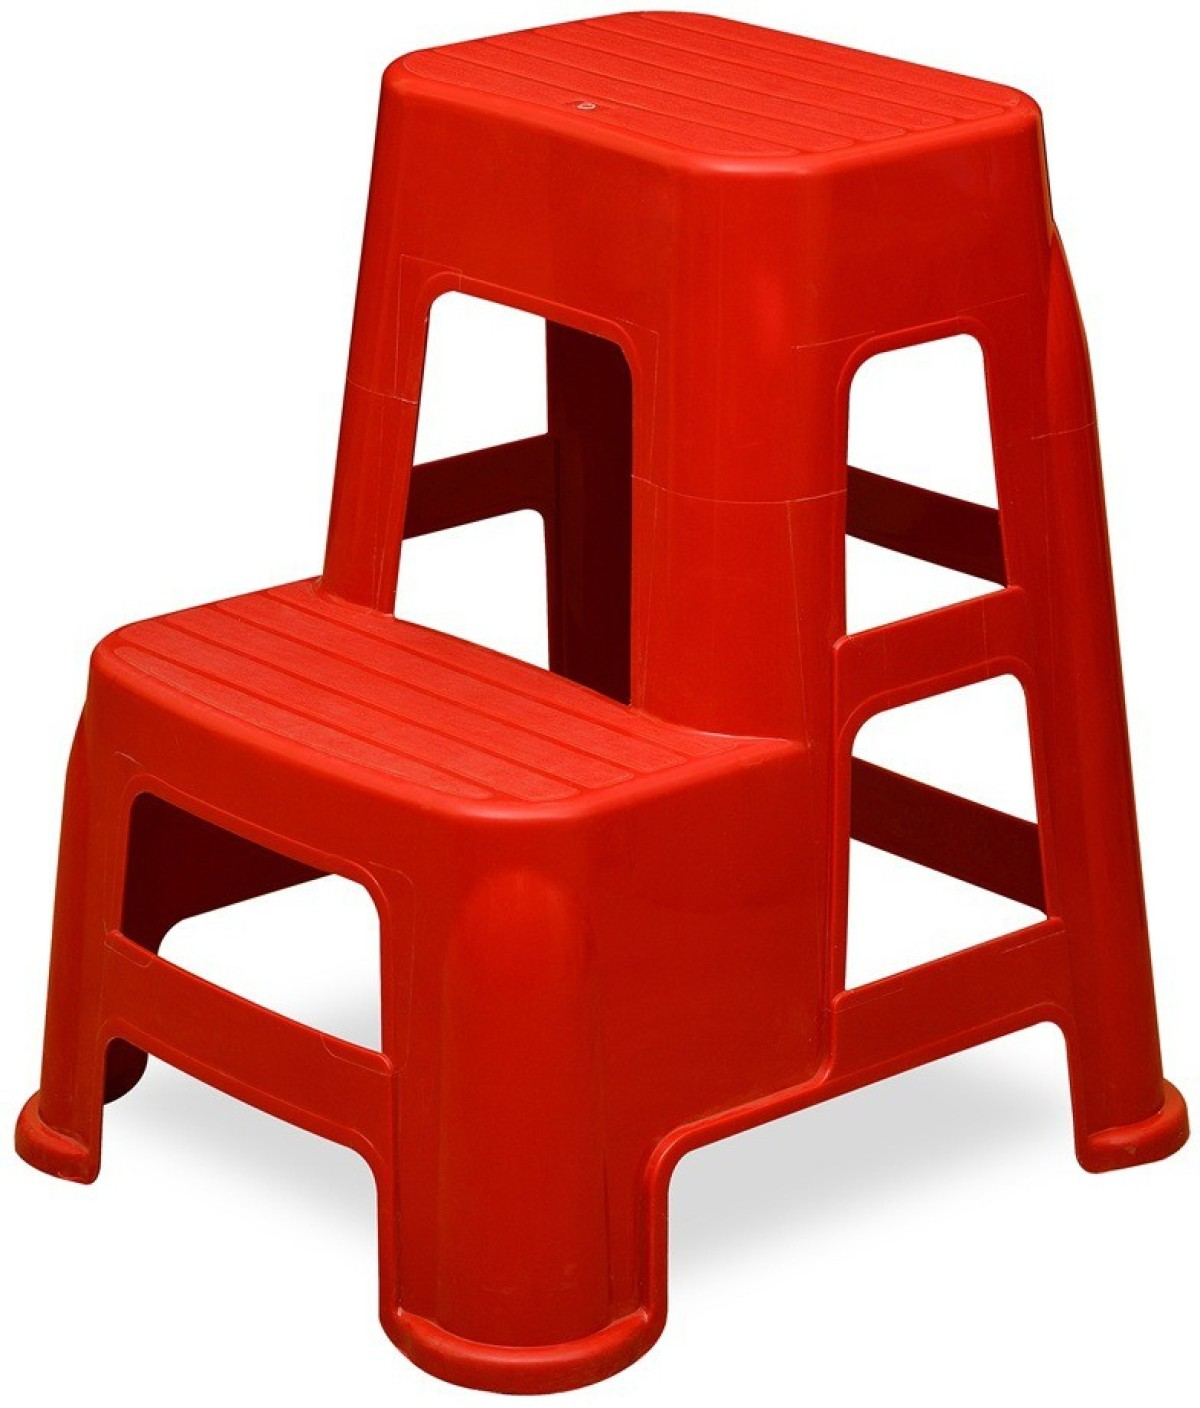 Nilkamal Stl21brd Kitchen Stool Price In India Buy